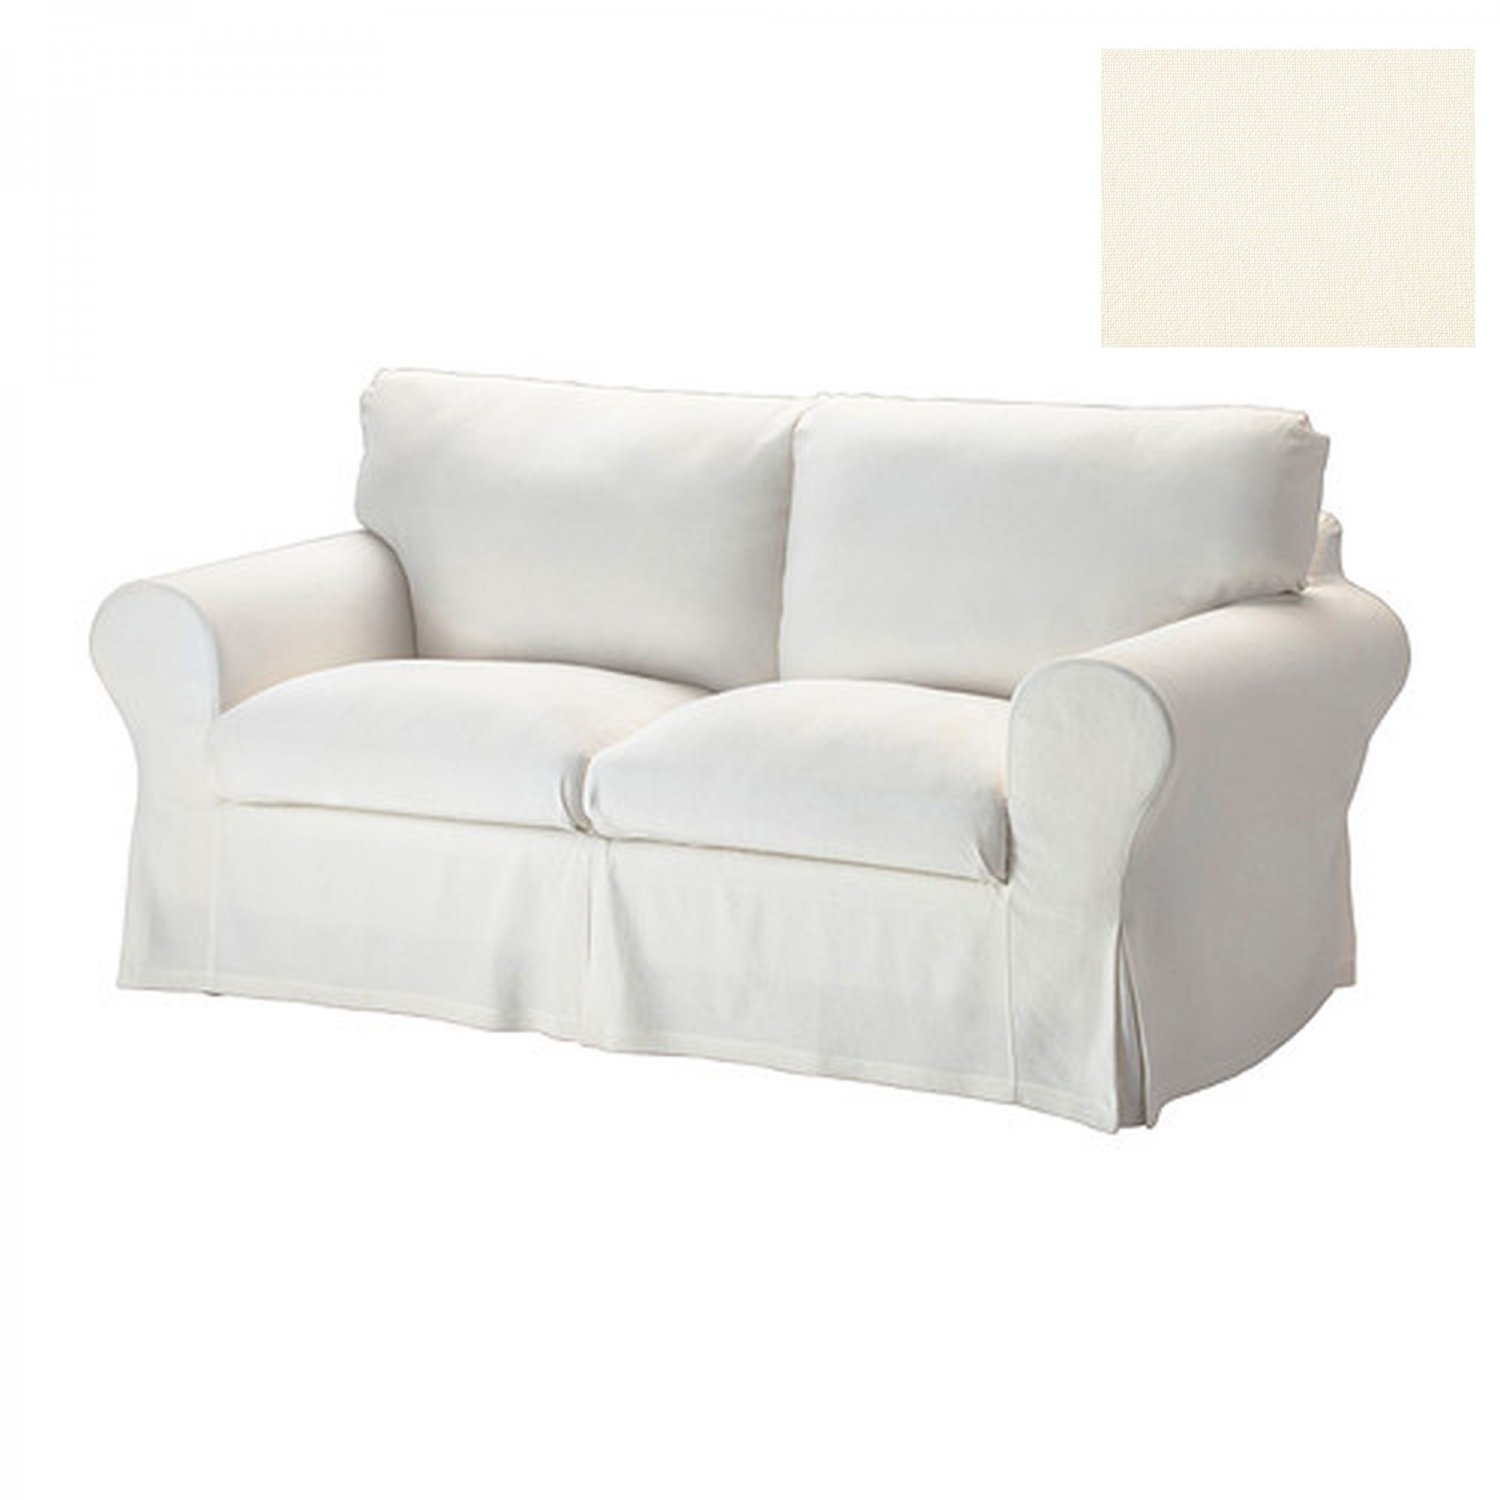 off white slipcover sofa cream leather corner dfs ikea ektorp 2 seat loveseat cover stenasa